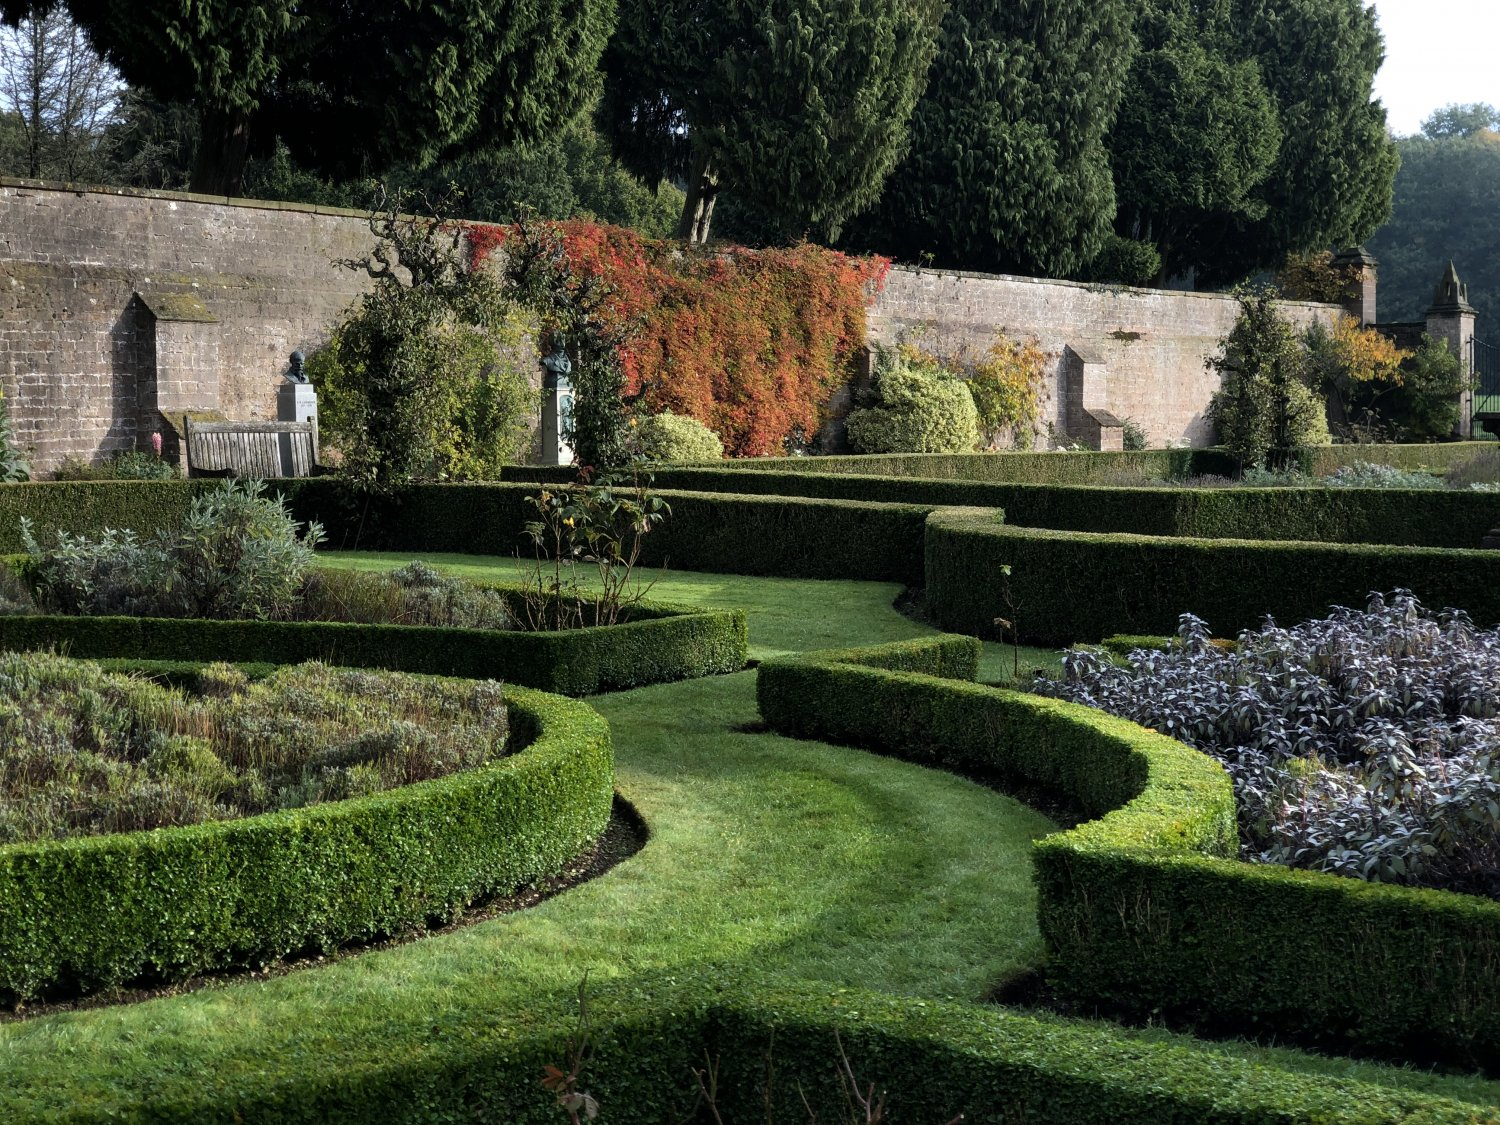 The Small Walled Garden Buxus Parterre after a clipping this season - currently training areas to re-grow